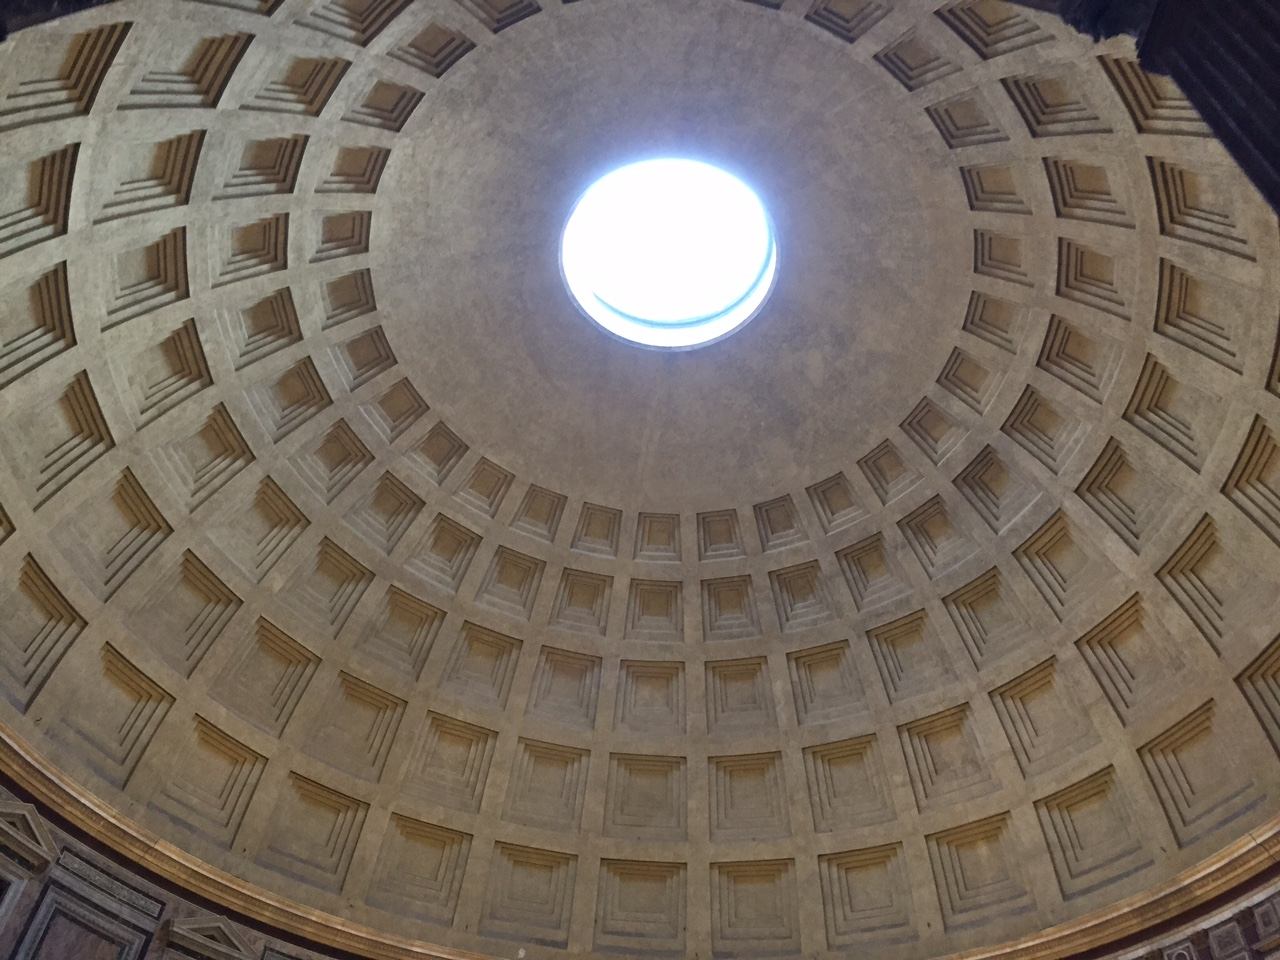 Not sure why I expected a helicopter tour or something, but you were free Pantheon, so I can't really complain. Photo by Max Siskind.